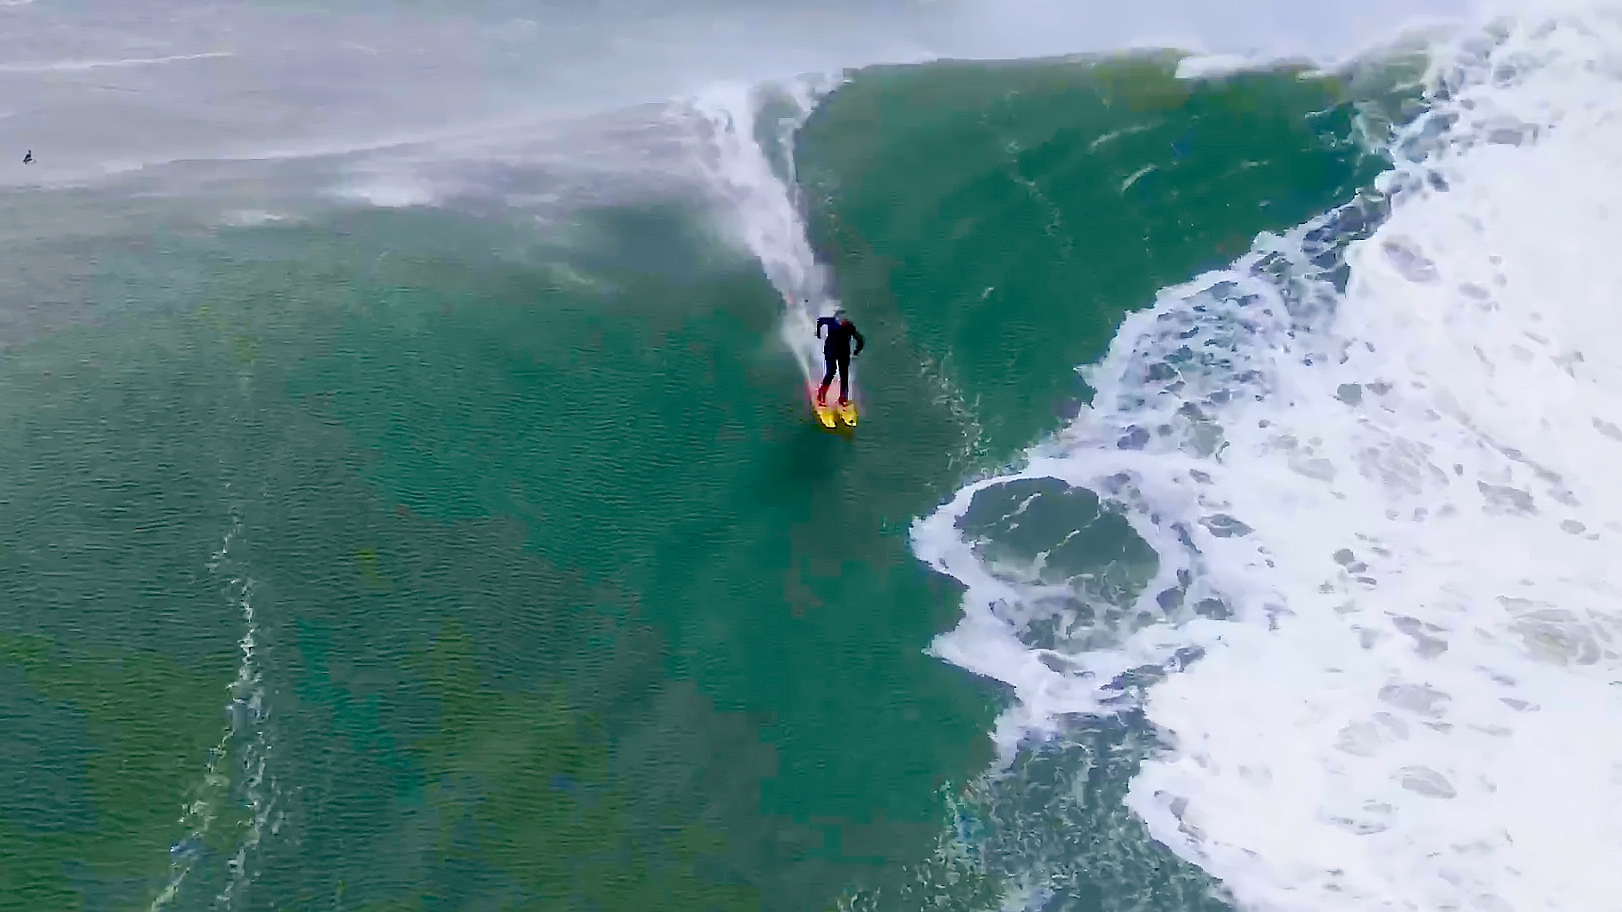 Southern California skier and surfer Chuck Patterson rides a big wave at Mavericks surf break near Half Moon Bay.